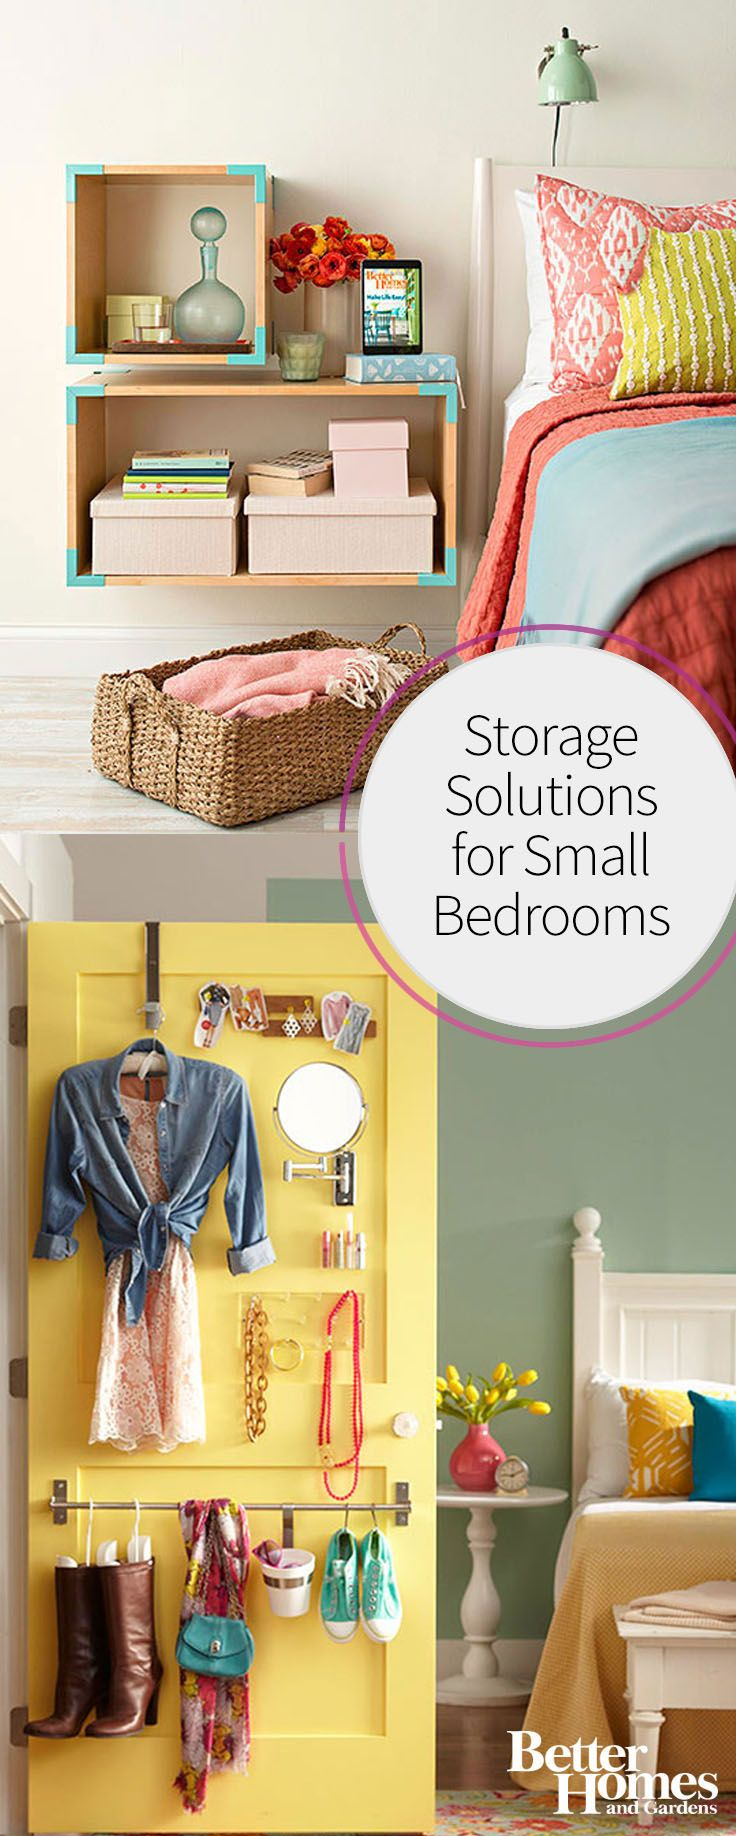 If You Have A Small Bedroom, Use This Guide To Plan Smart Storage Solutions  That